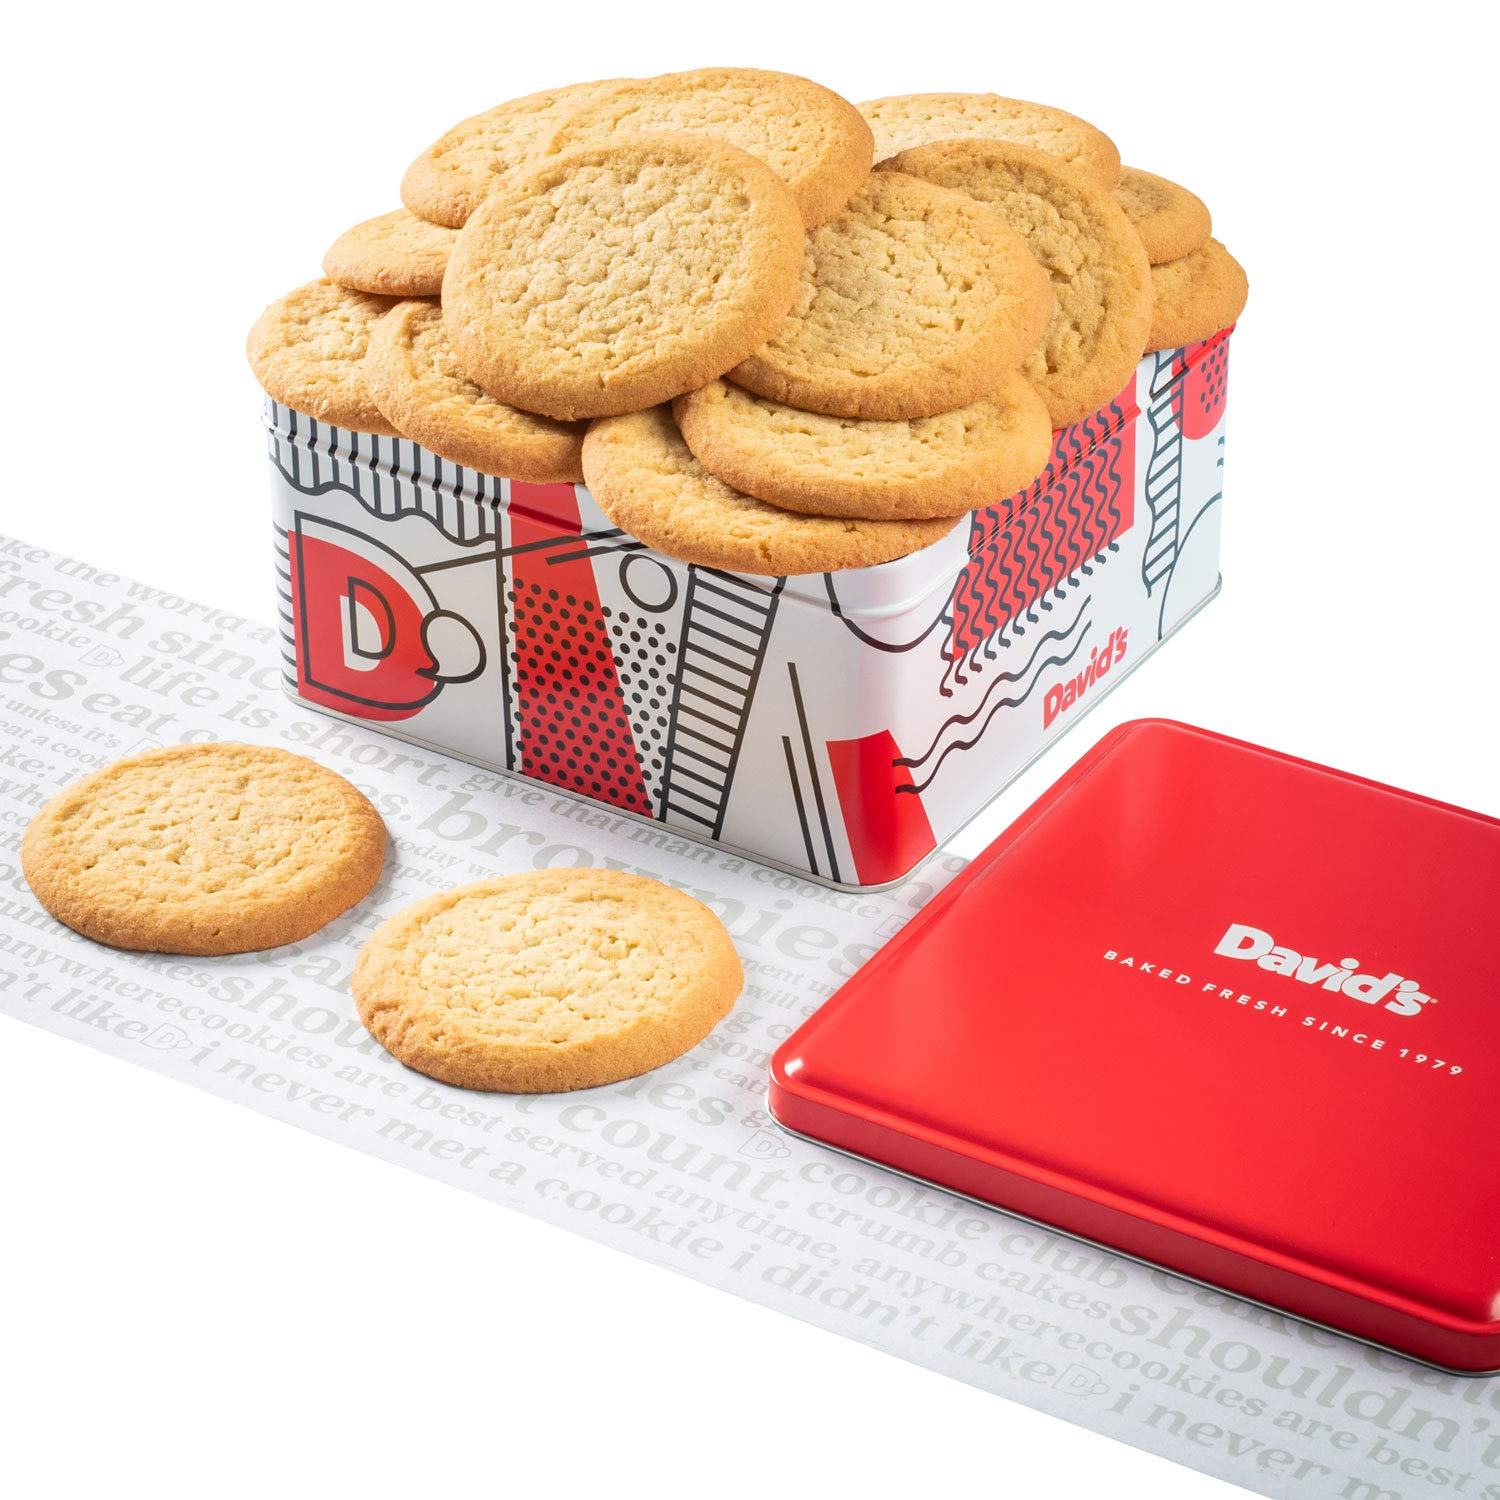 David's Cookies - 24 Fresh Baked Sugar Cookie Gourmet Gift Basket - Christmas, Holiday & Corporate Food Tin - Idea For Men & Women - 2 lb.